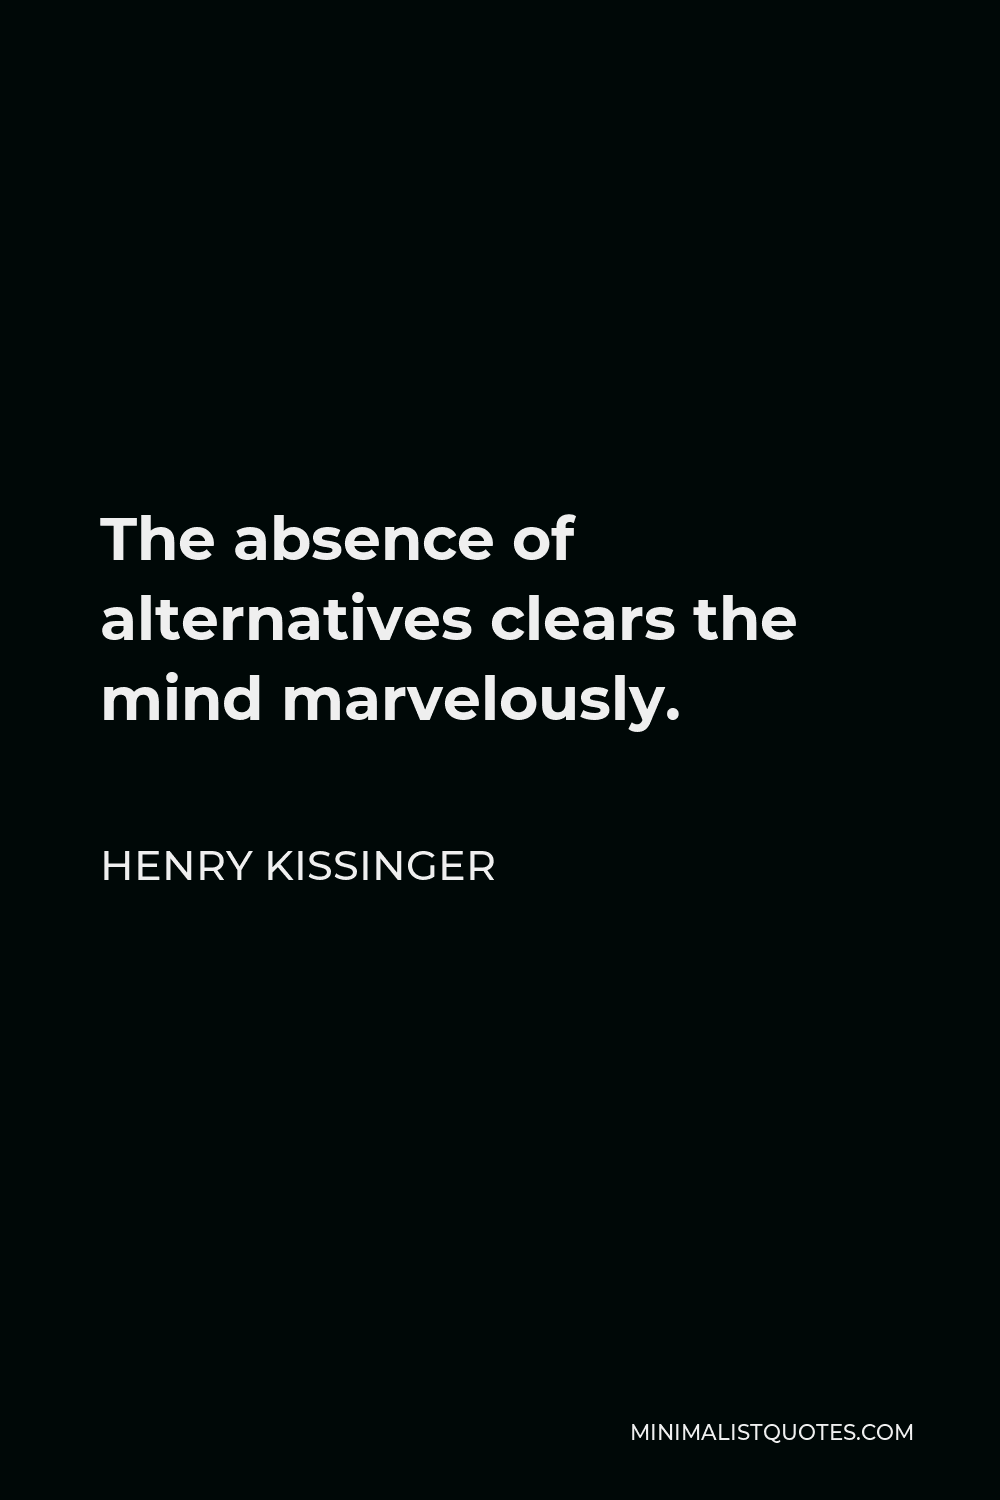 Henry Kissinger Quote - The absence of alternatives clears the mind marvelously.